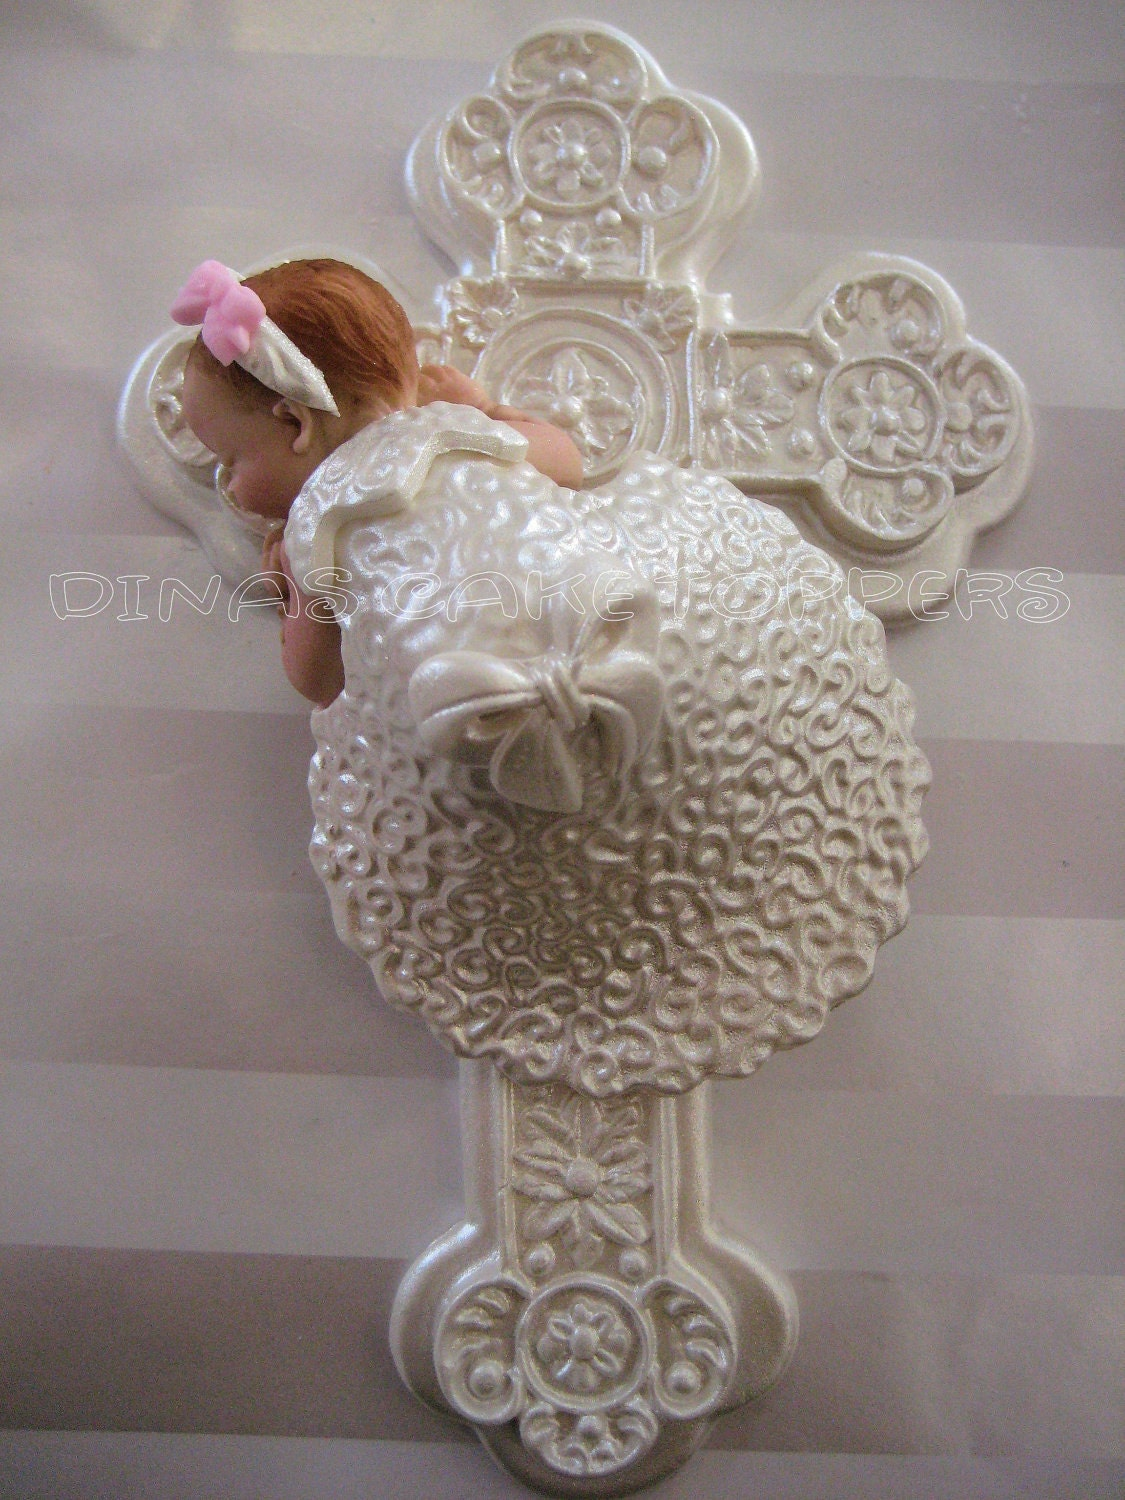 Cake Toppers For Baby Girl Christening : BAPTISM CHRISTENING Gown Cake Topper Cross by DinasCakeToppers